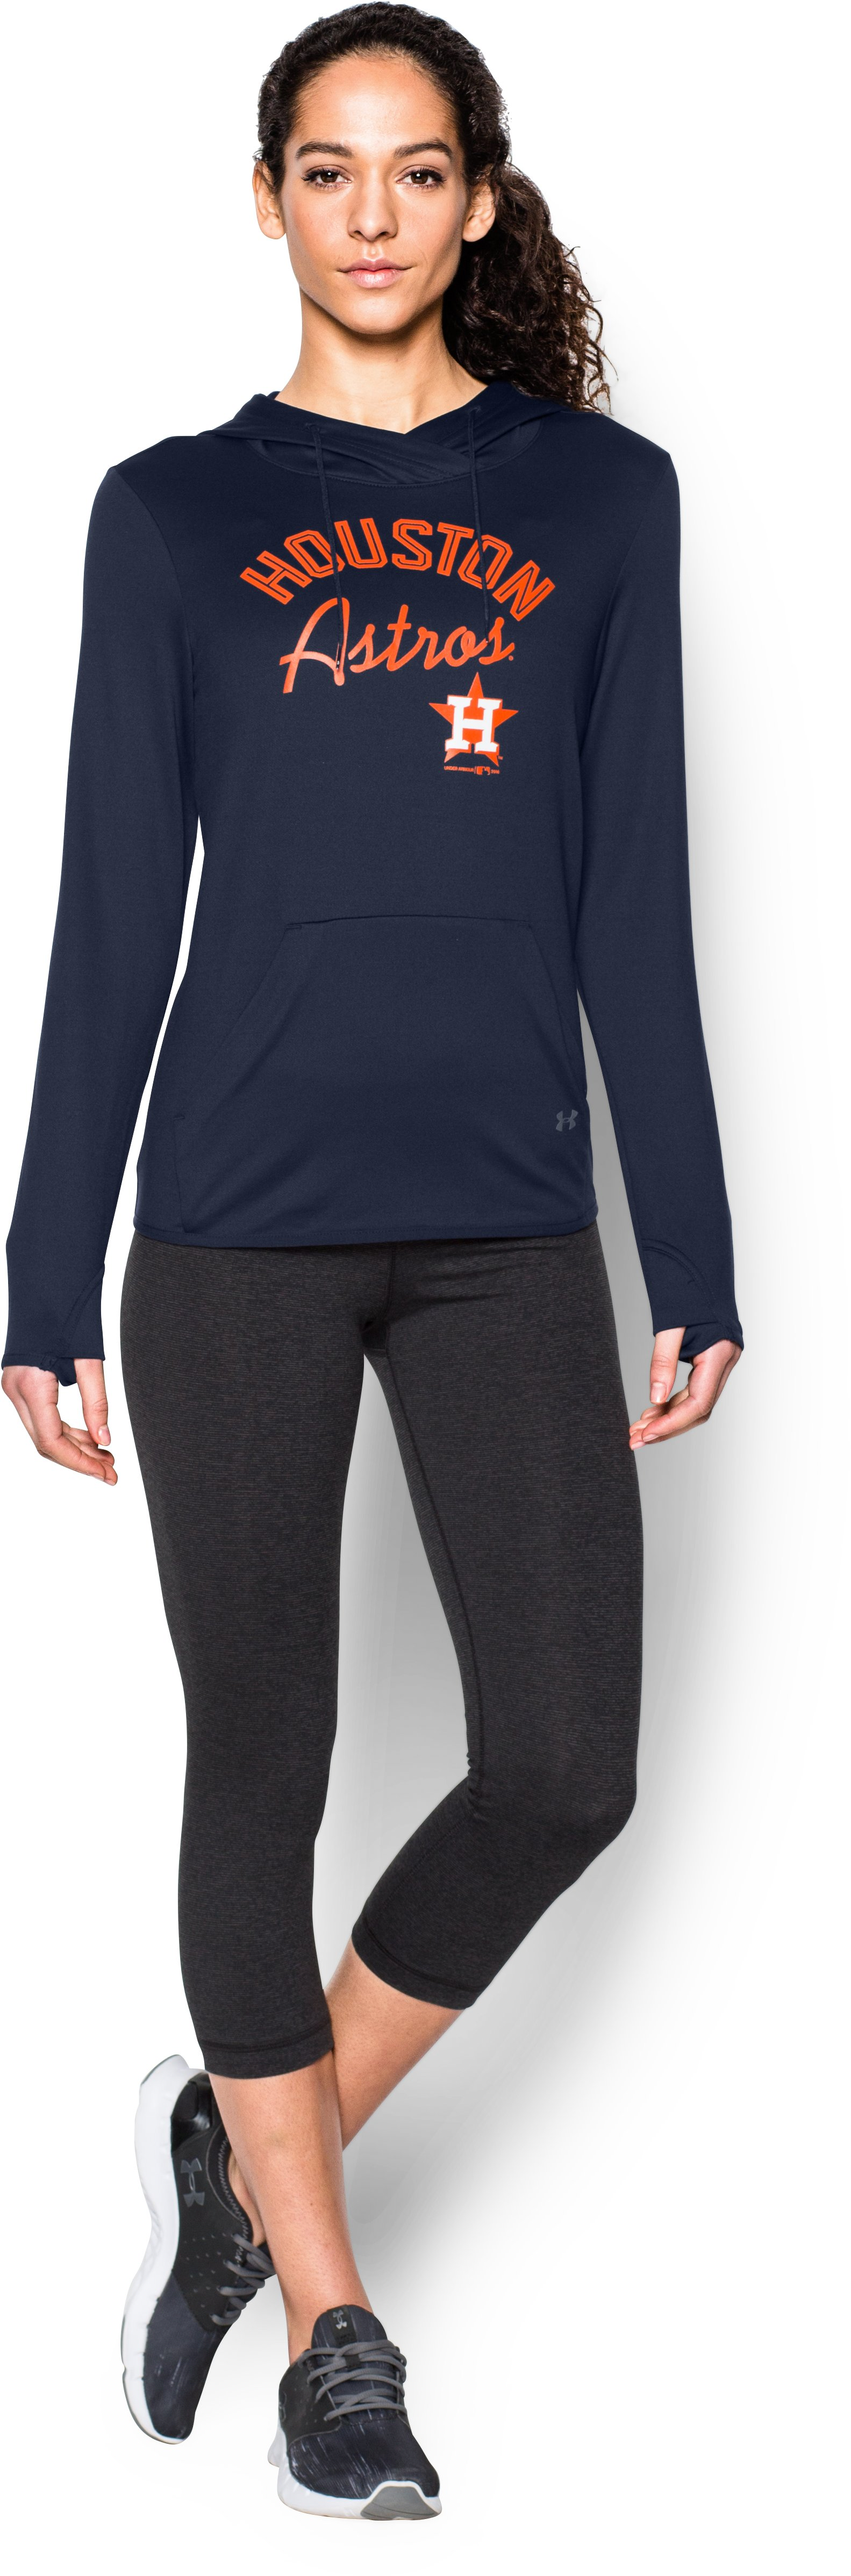 Women's Houston Astros UA French Terry Hoodie, Midnight Navy, Front